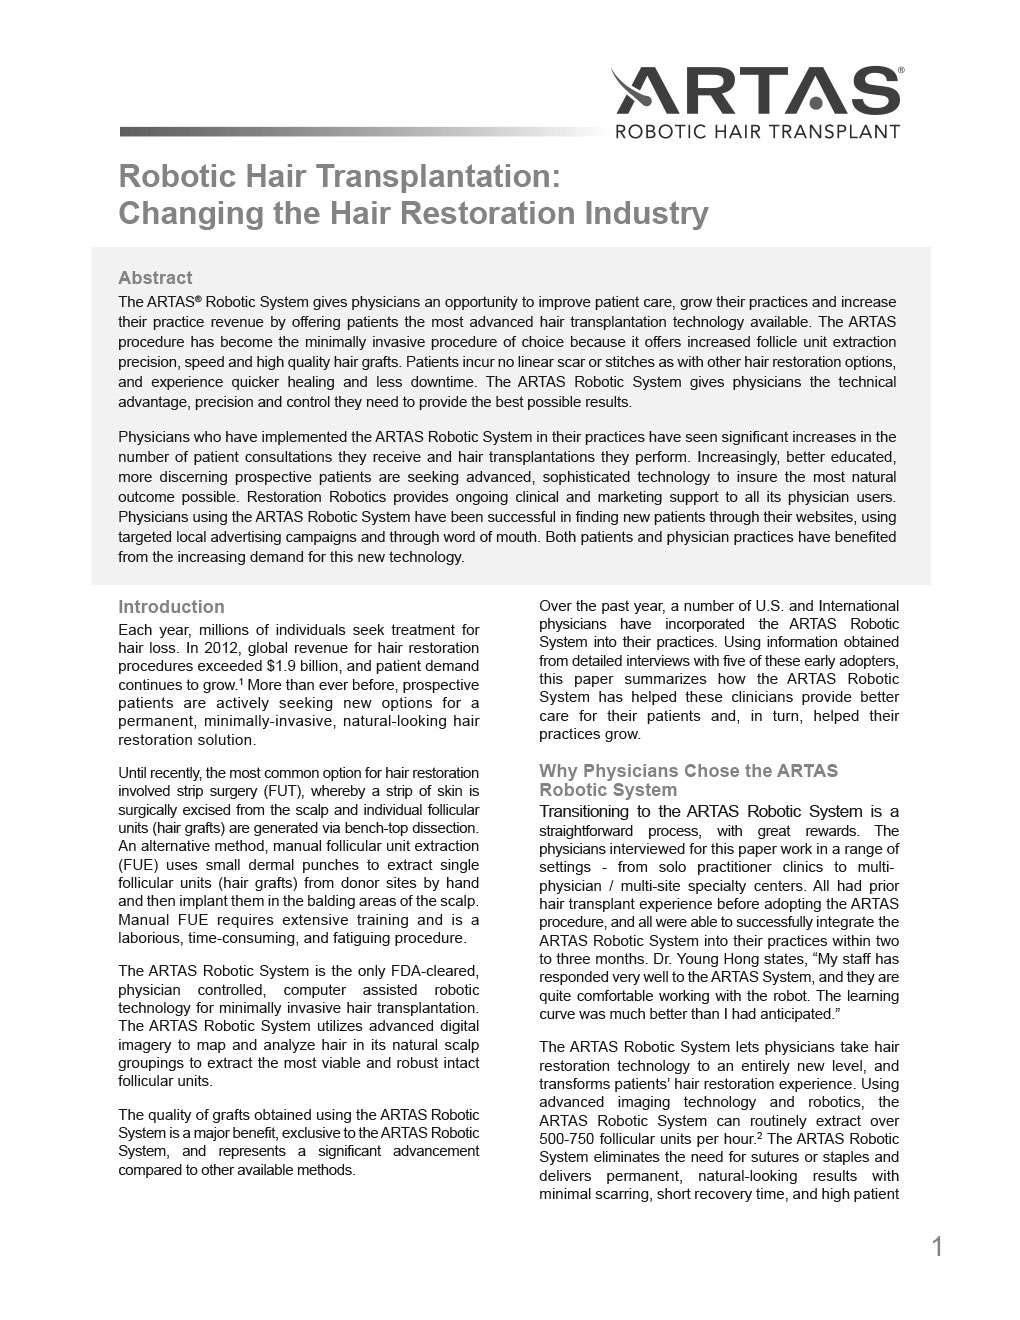 Robotic Hair Transplantation Changing the Hair Restoration Industry 2013 1